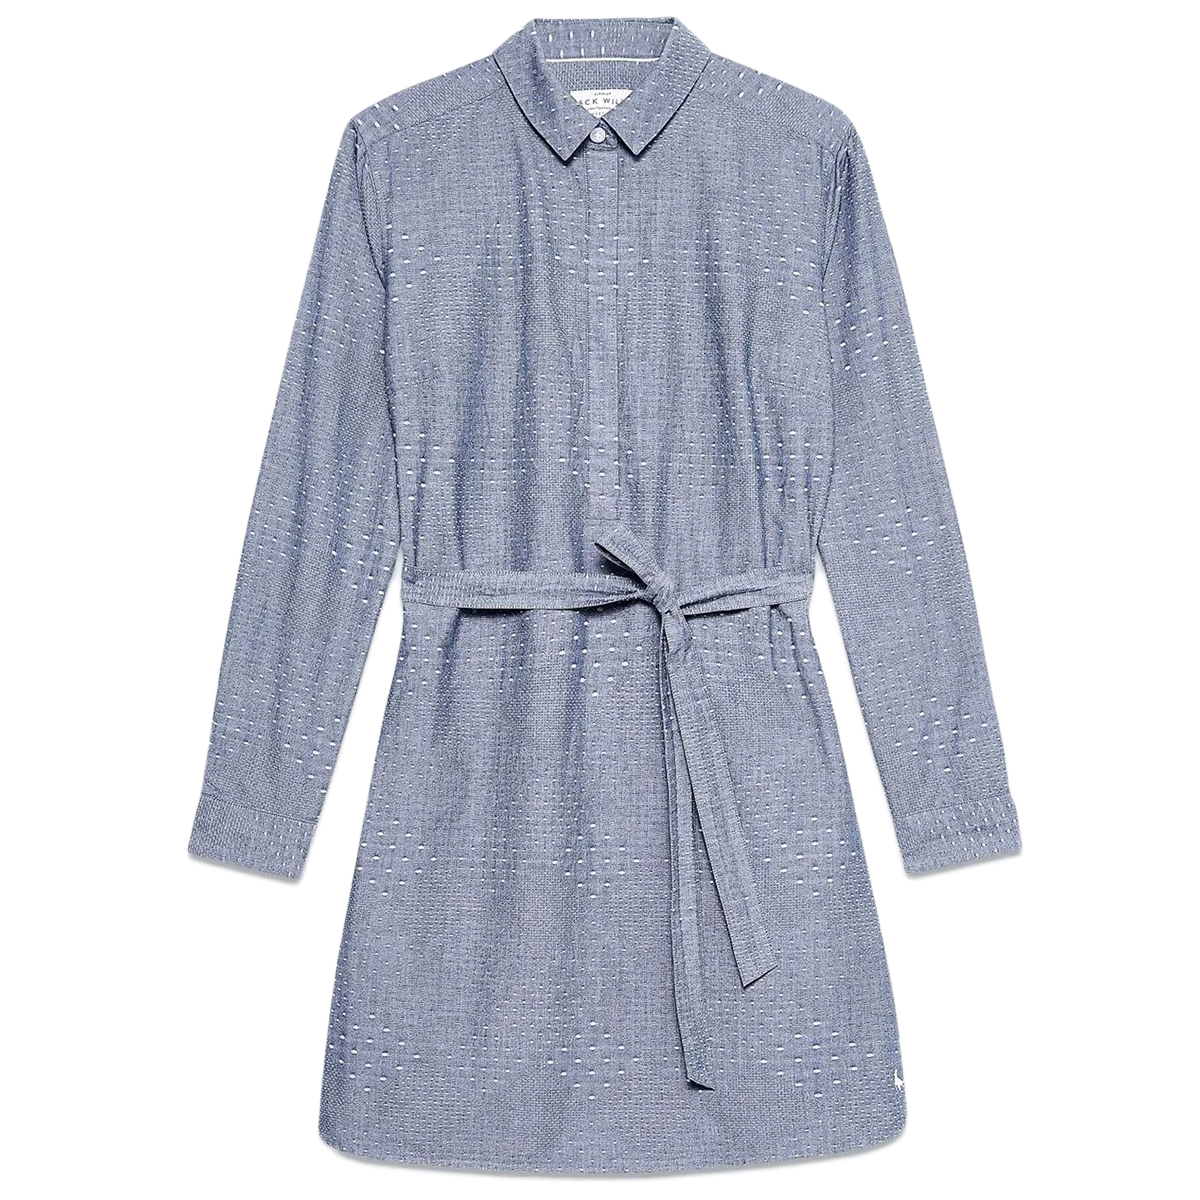 Jack Wills Women's Baysdale Shirt Dress - Blue, 6